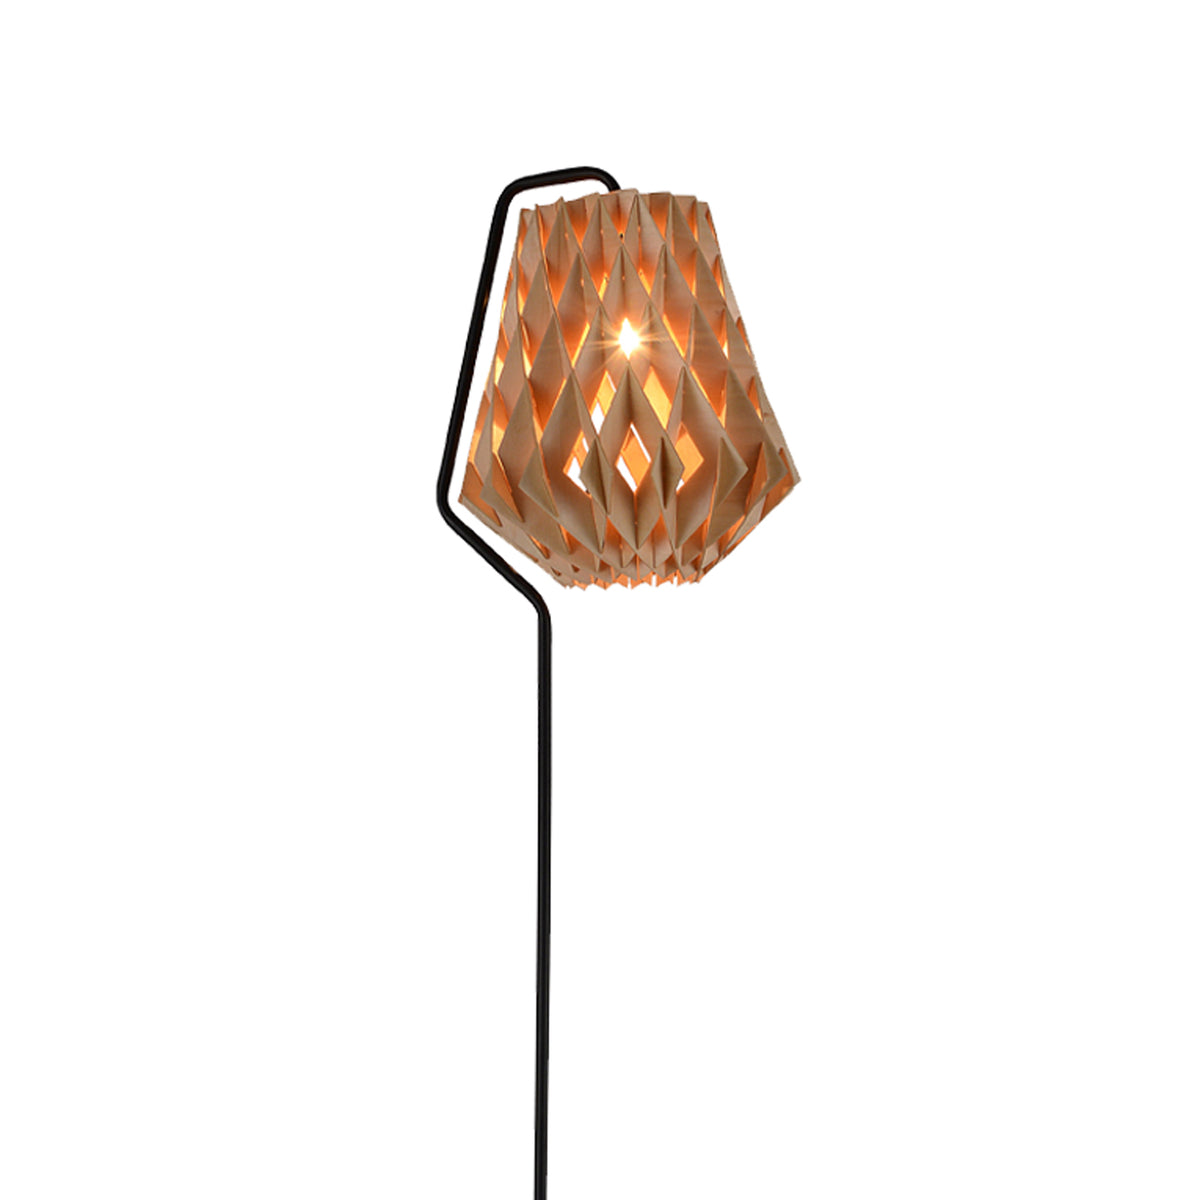 Pilke Floor Lamp - objects of interest